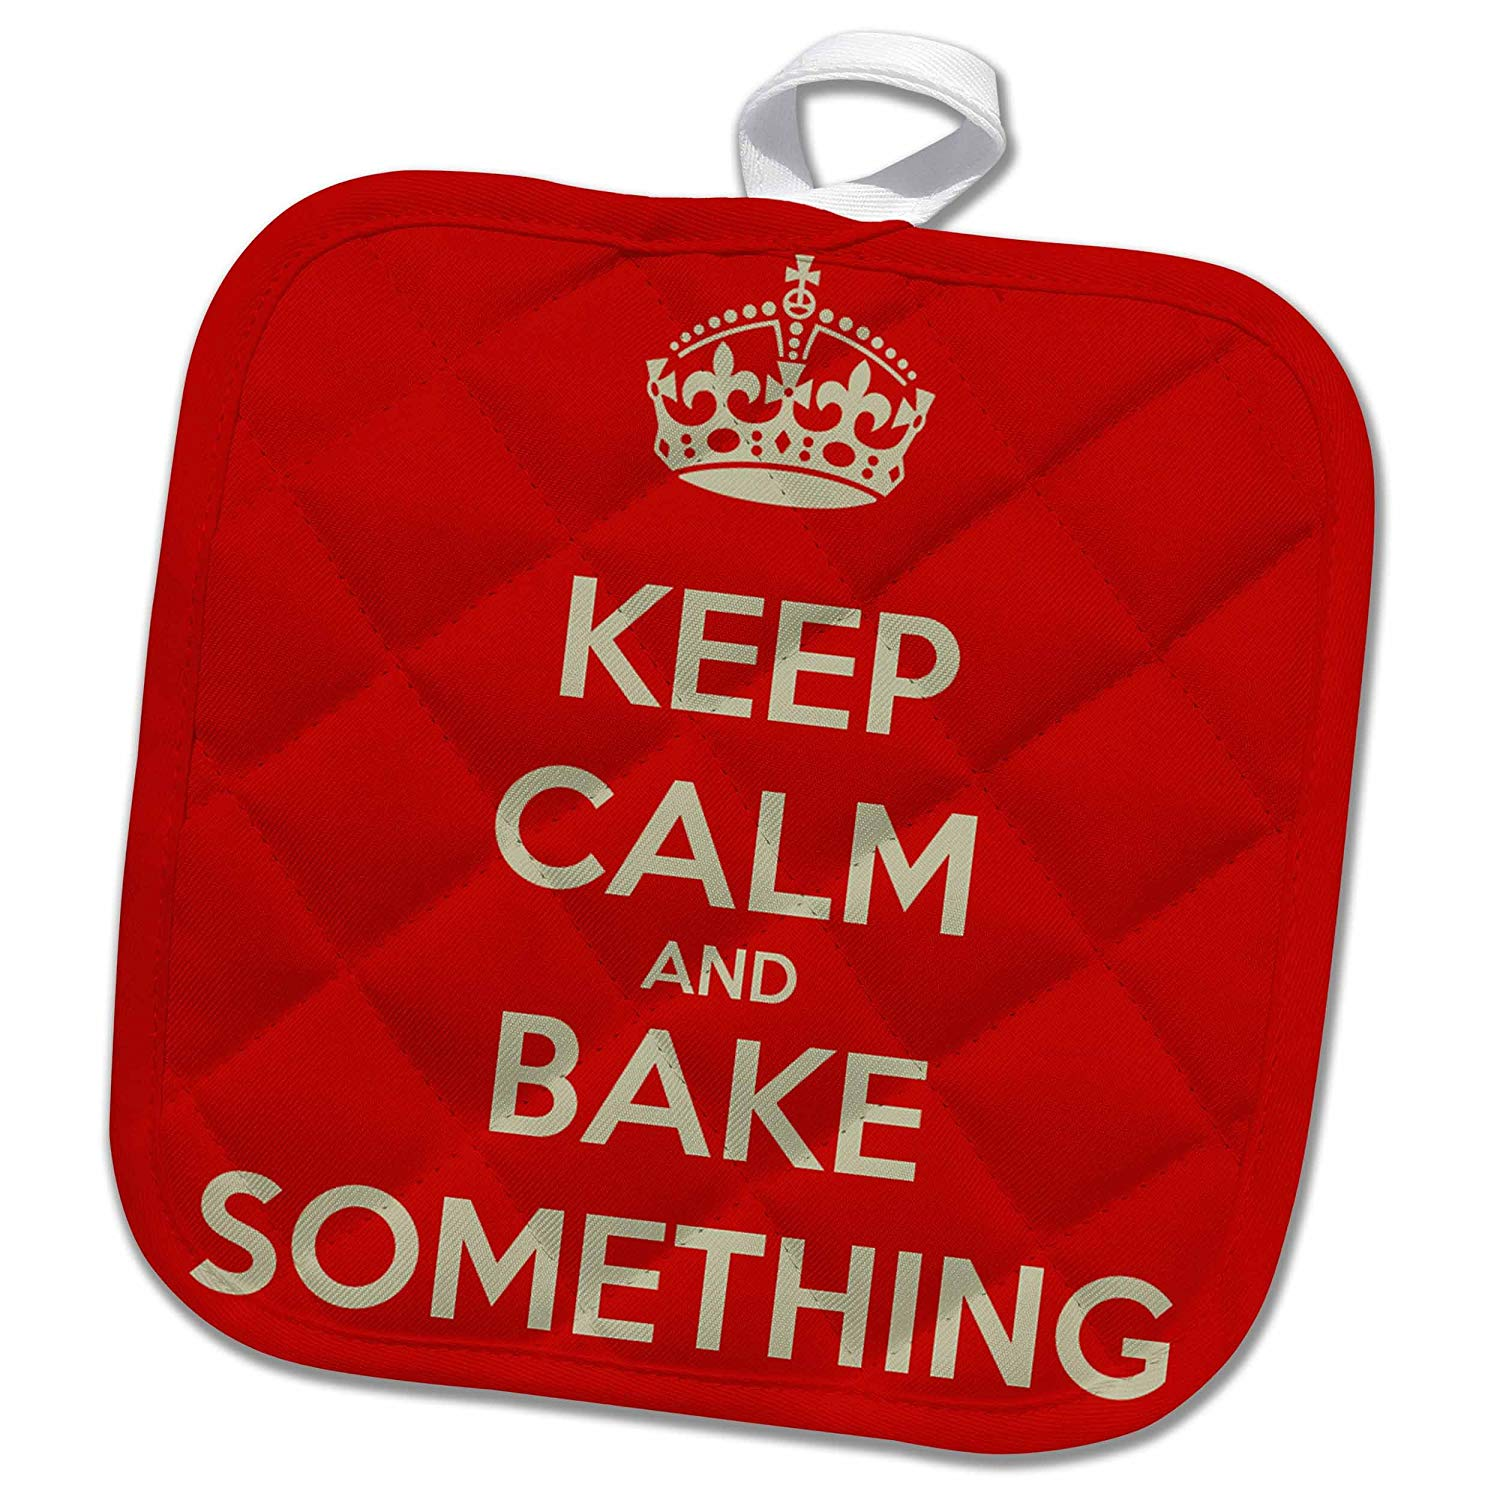 a3765fb67 3dRose EvaDane - Funny Quotes - Keep calm and bake something - 8x8  Potholder (phl_159621_1